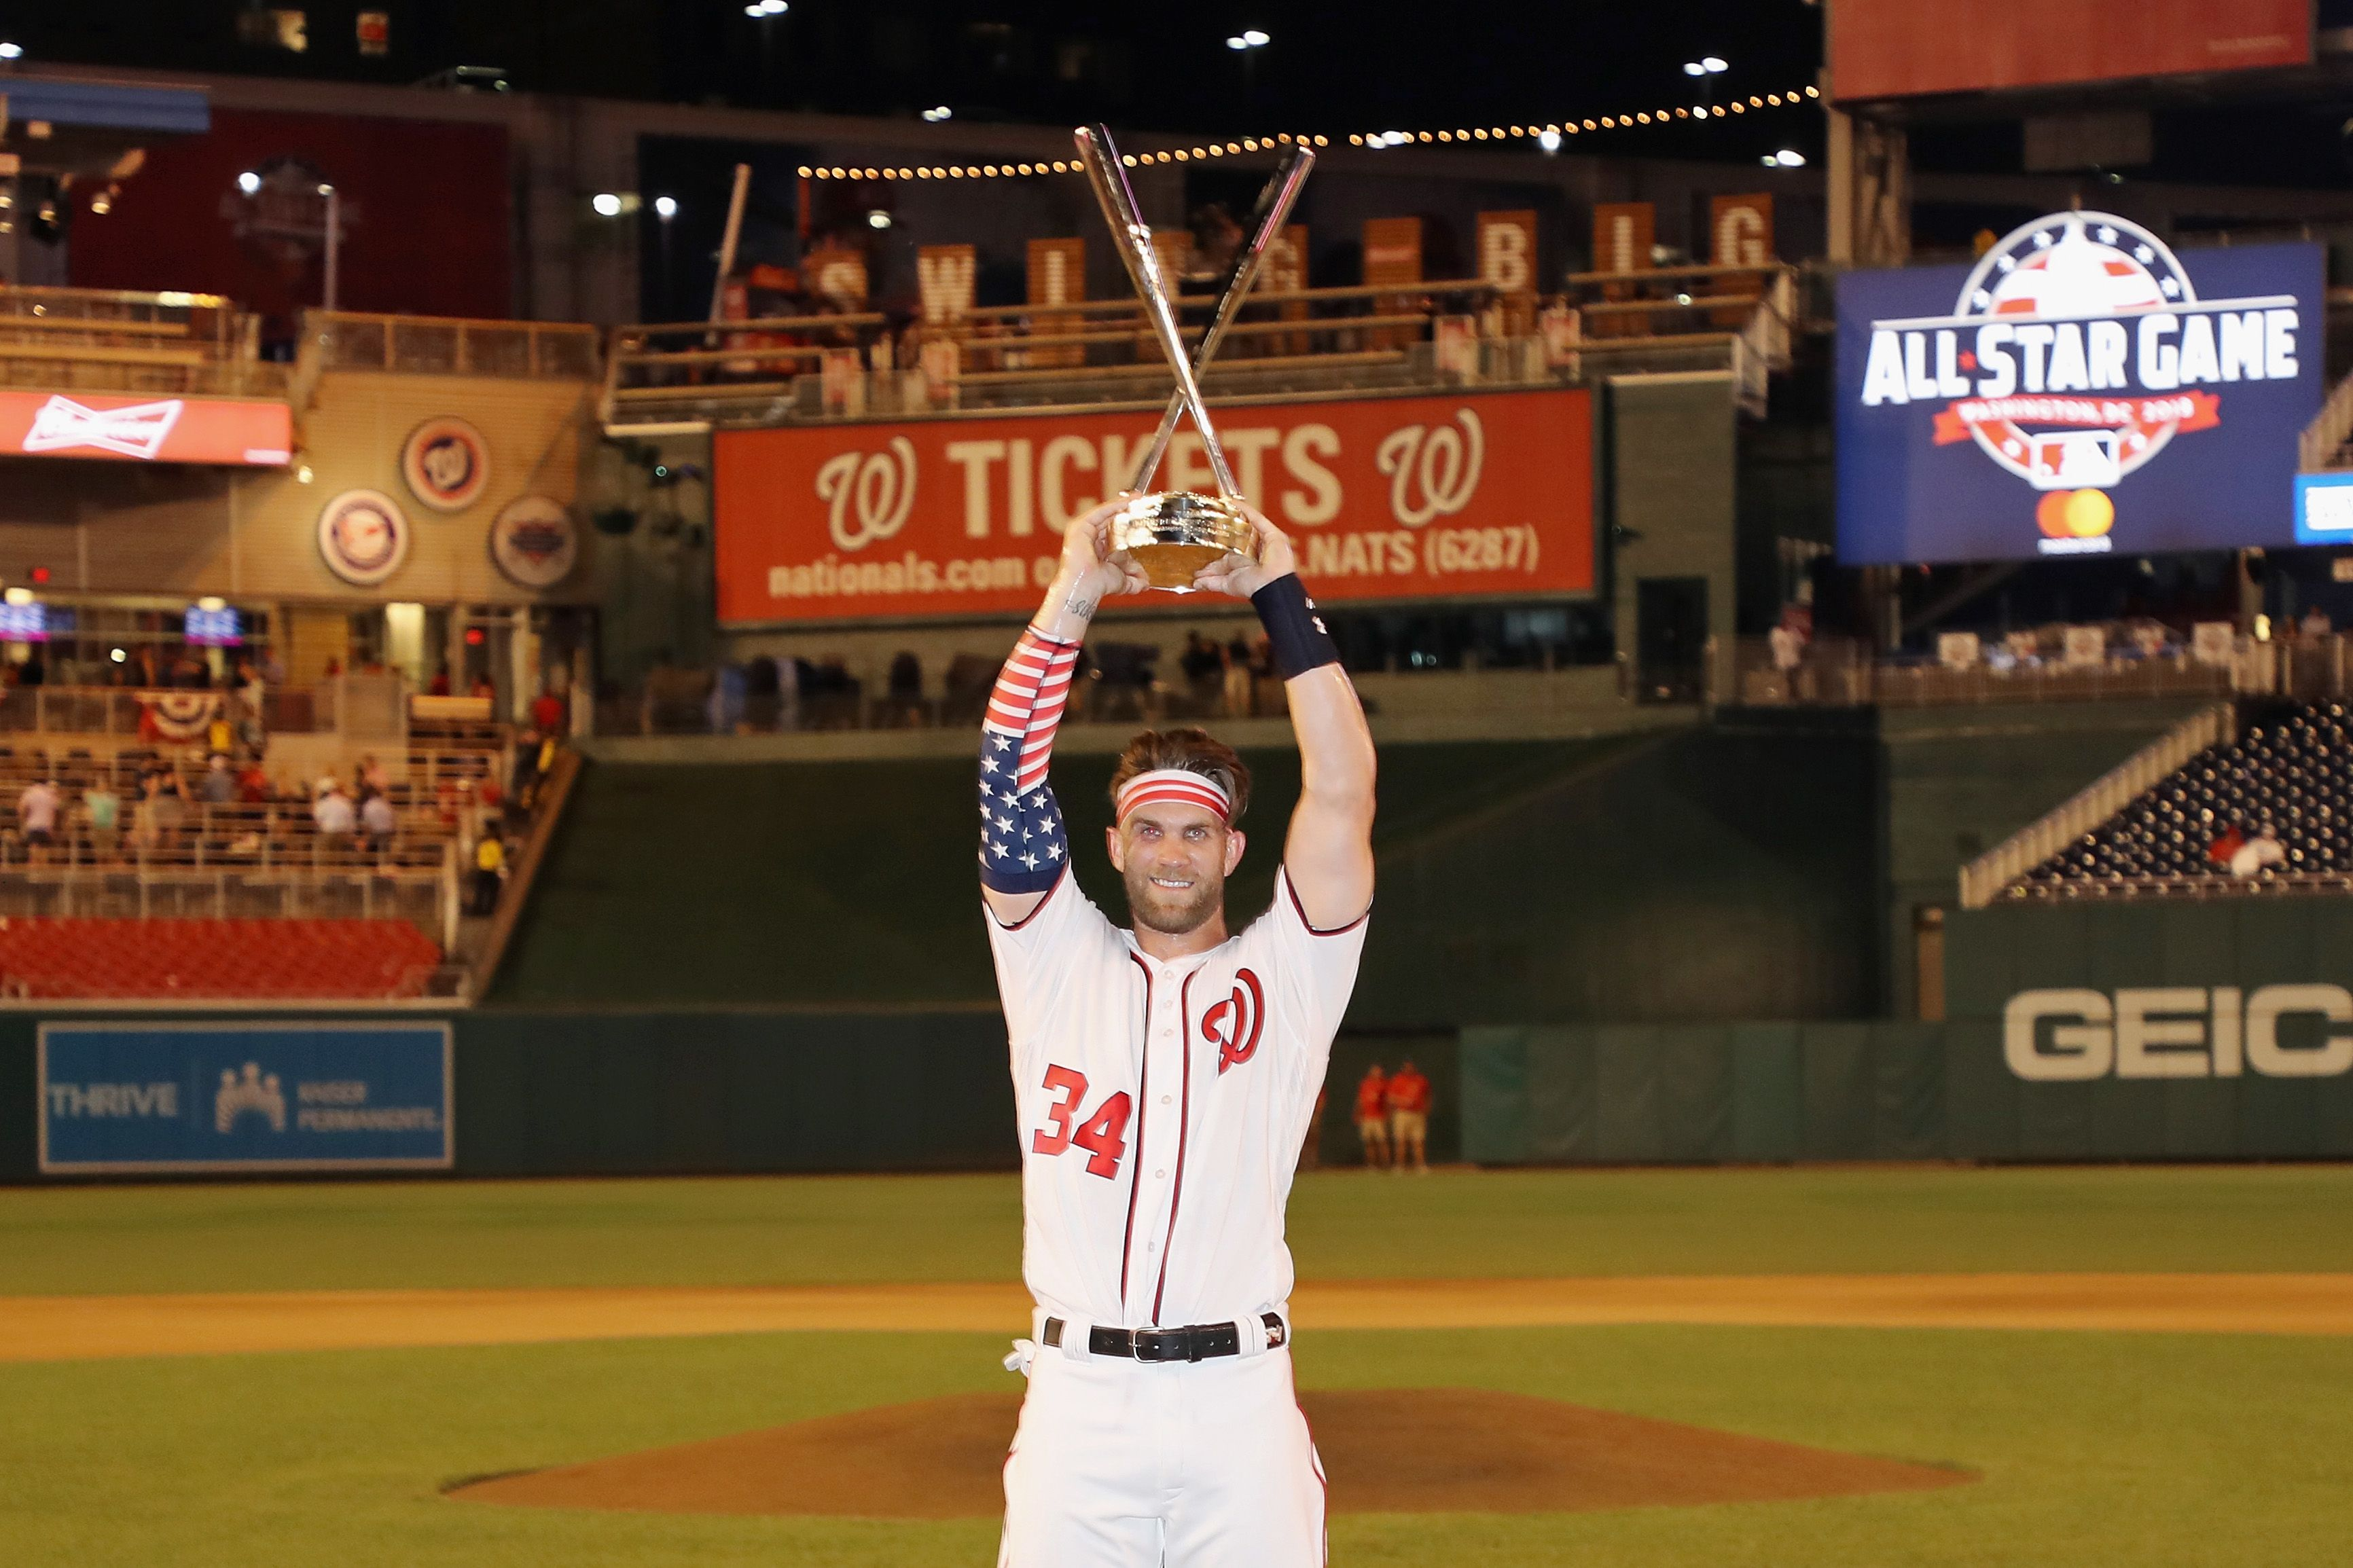 Bryce Harper of the Washington Nationals and National League celebrates with the trophy after winning the T-Mobile Home Run Derby